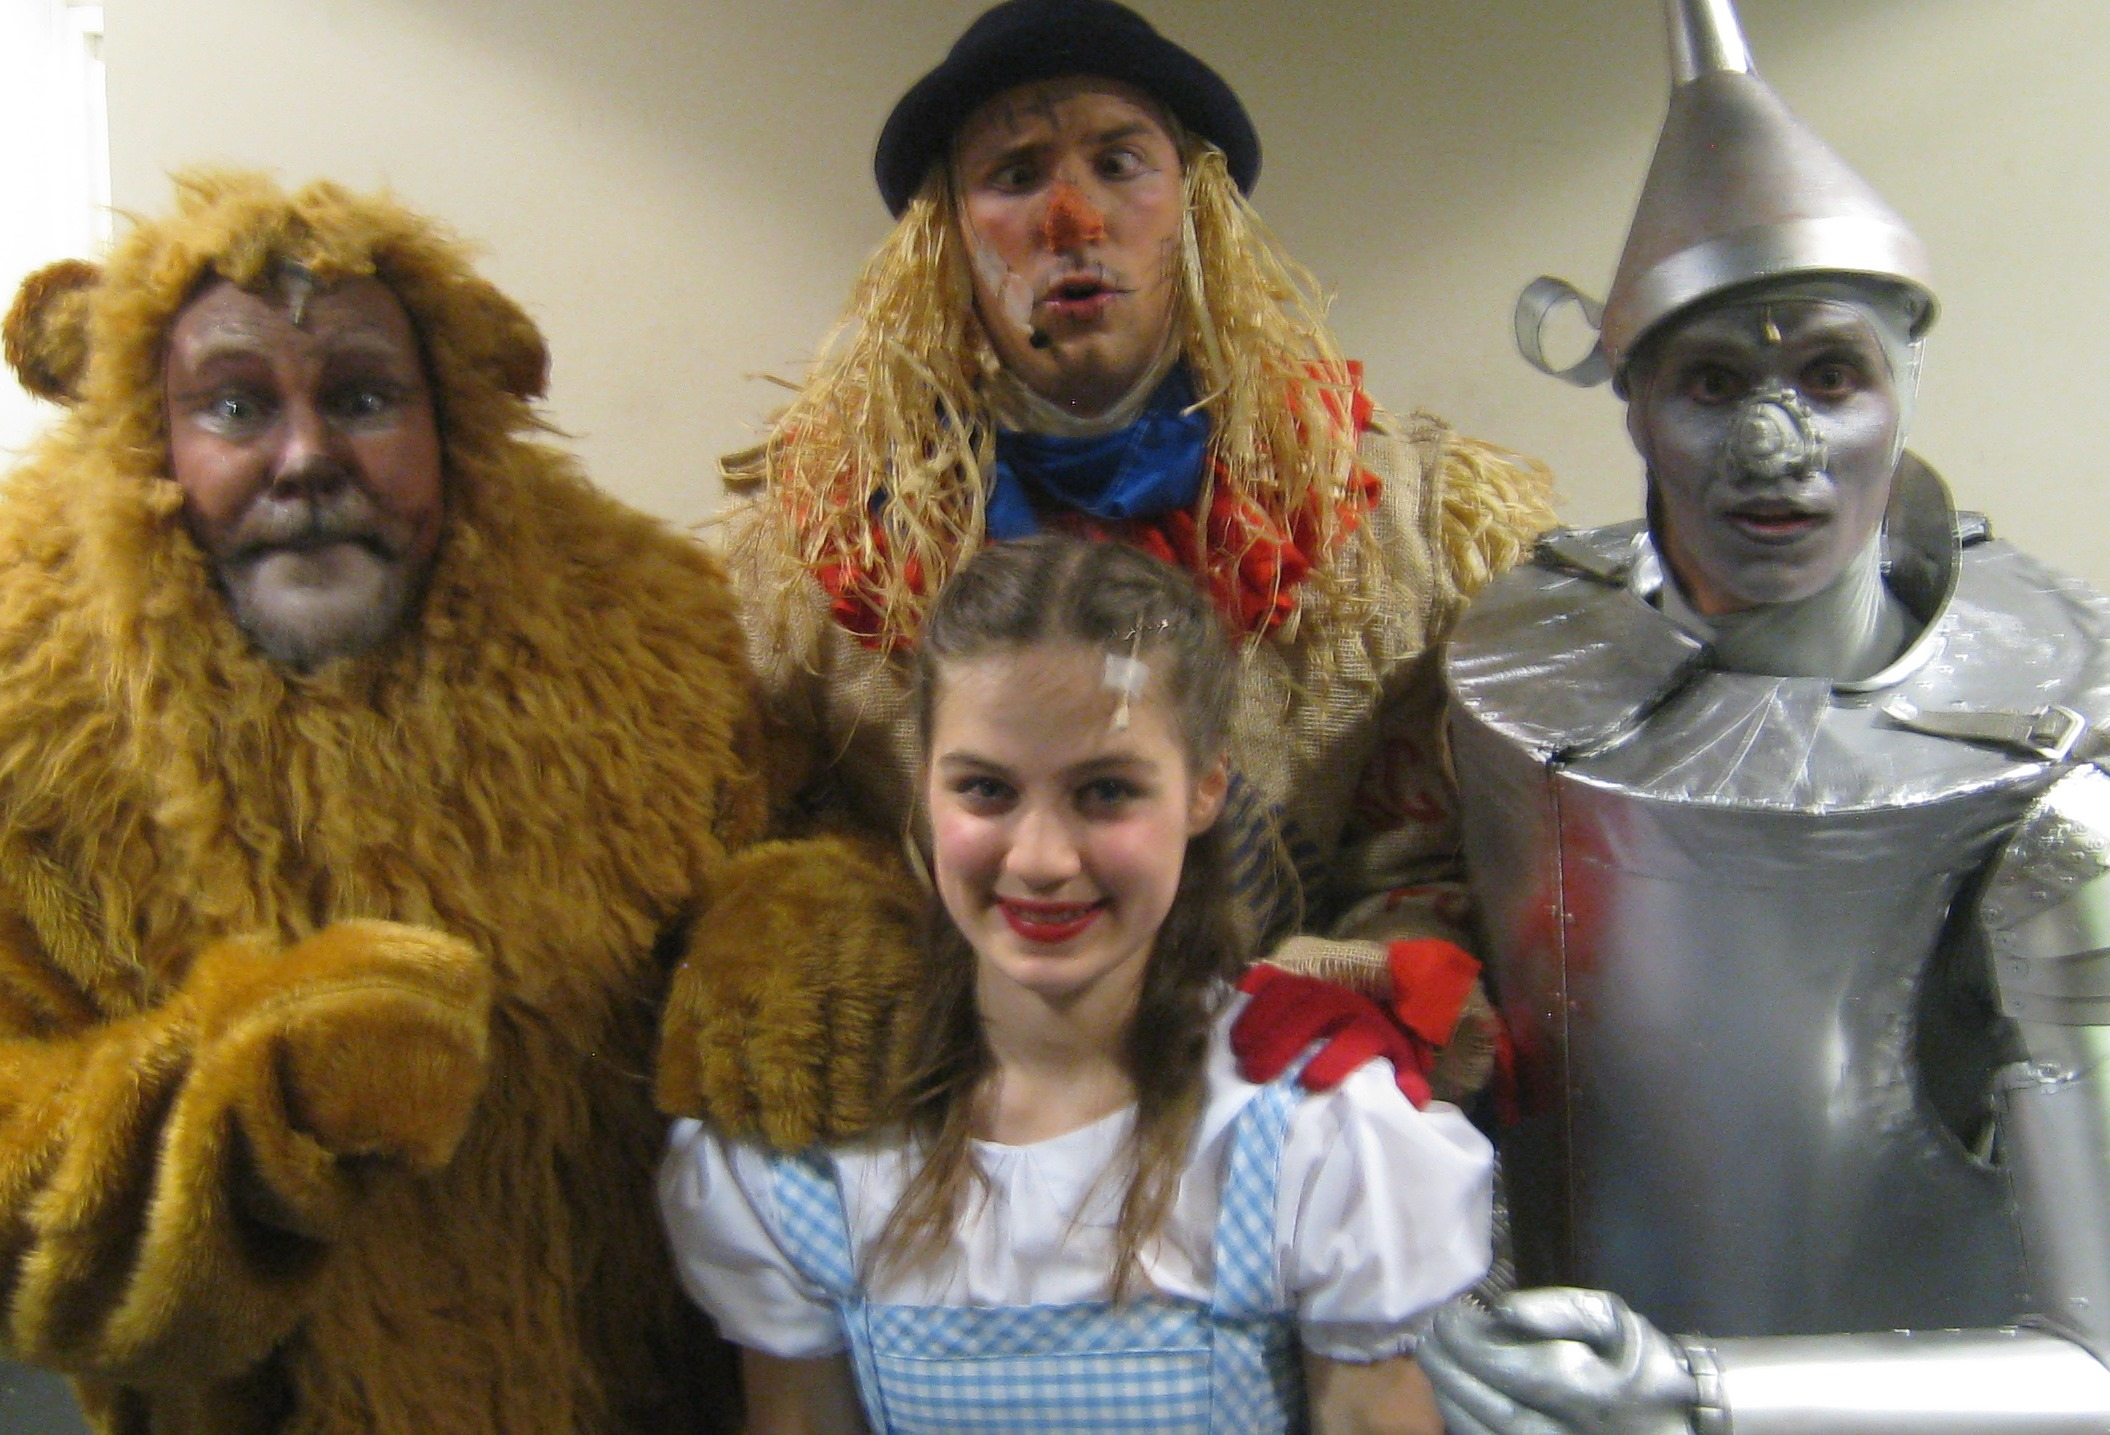 Dorothy, Lion, Scarecrow and Tin Man in costume